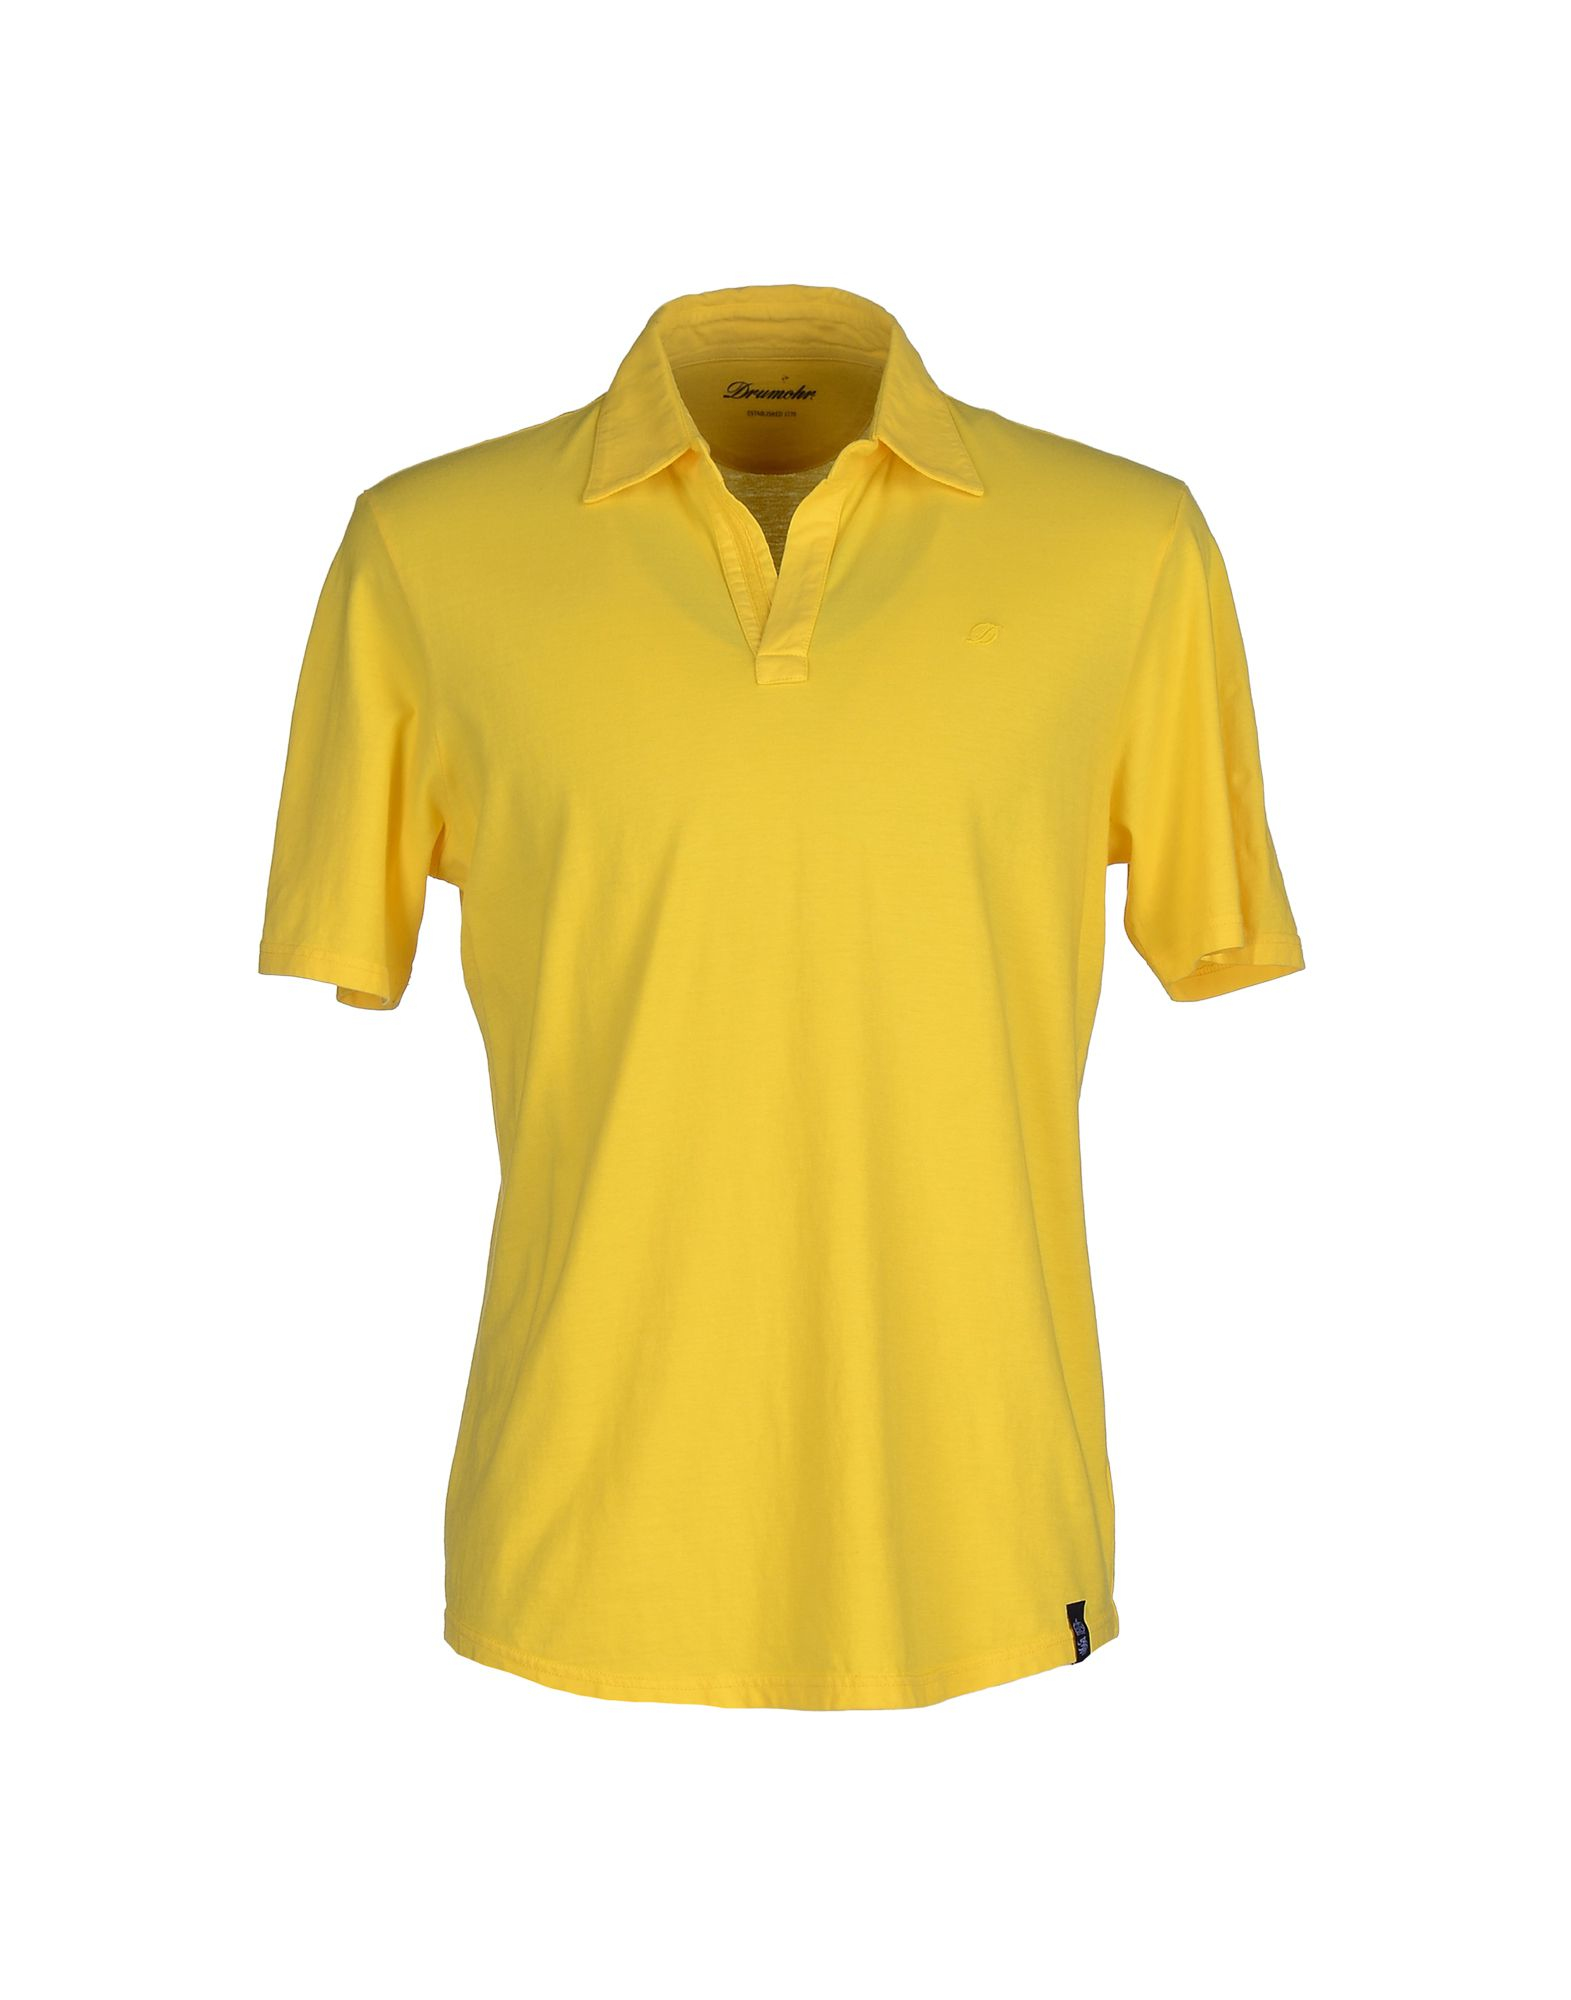 Drumohr Polo Shirt In Yellow For Men Save 59 Lyst